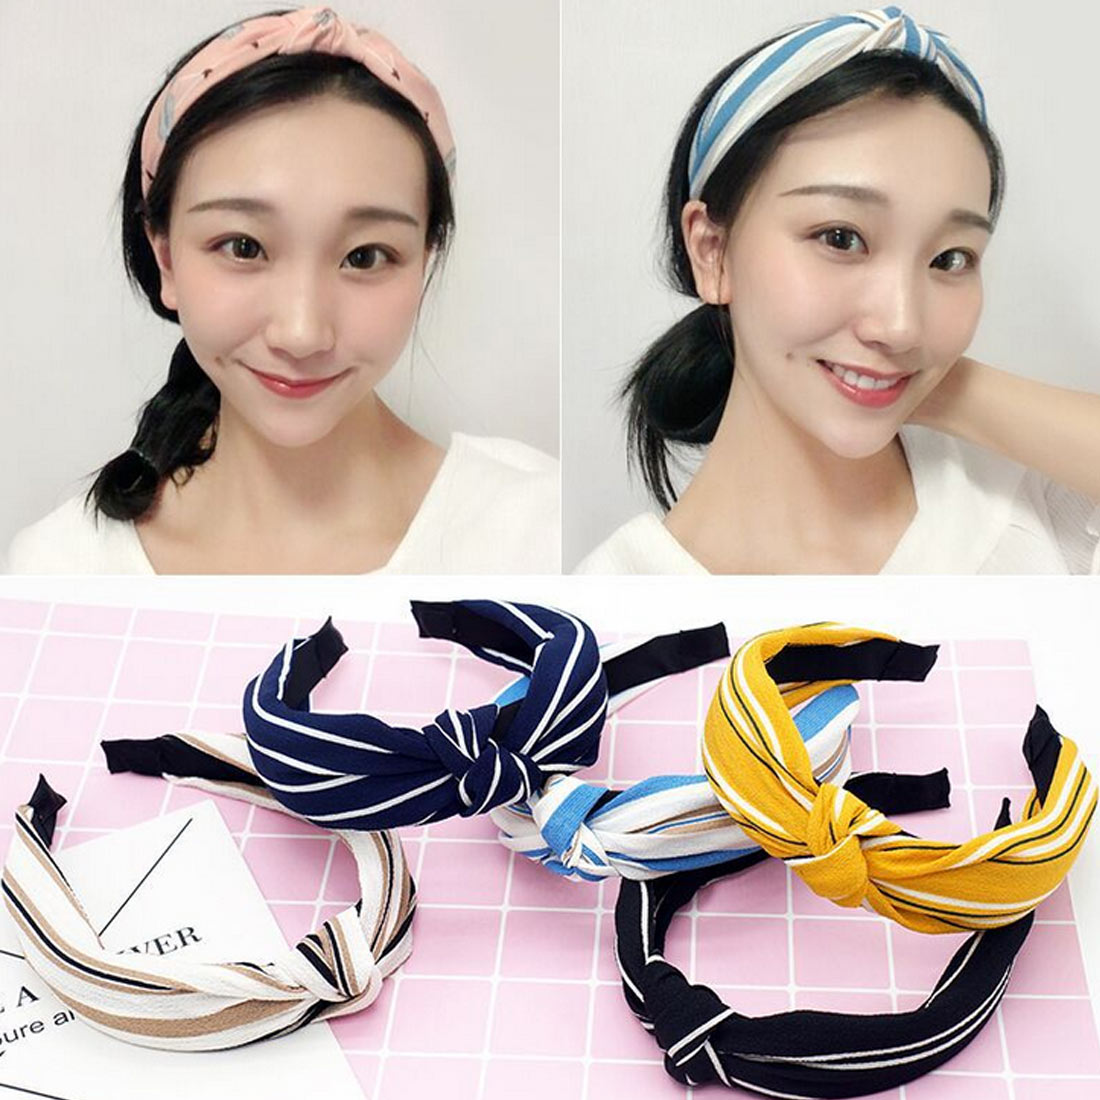 2019 Cute Knot Plastic Hairbands Headbands for Women Girls Fabric Floral Print Hairband Wide Hair Band Accessories in Women 39 s Hair Accessories from Apparel Accessories